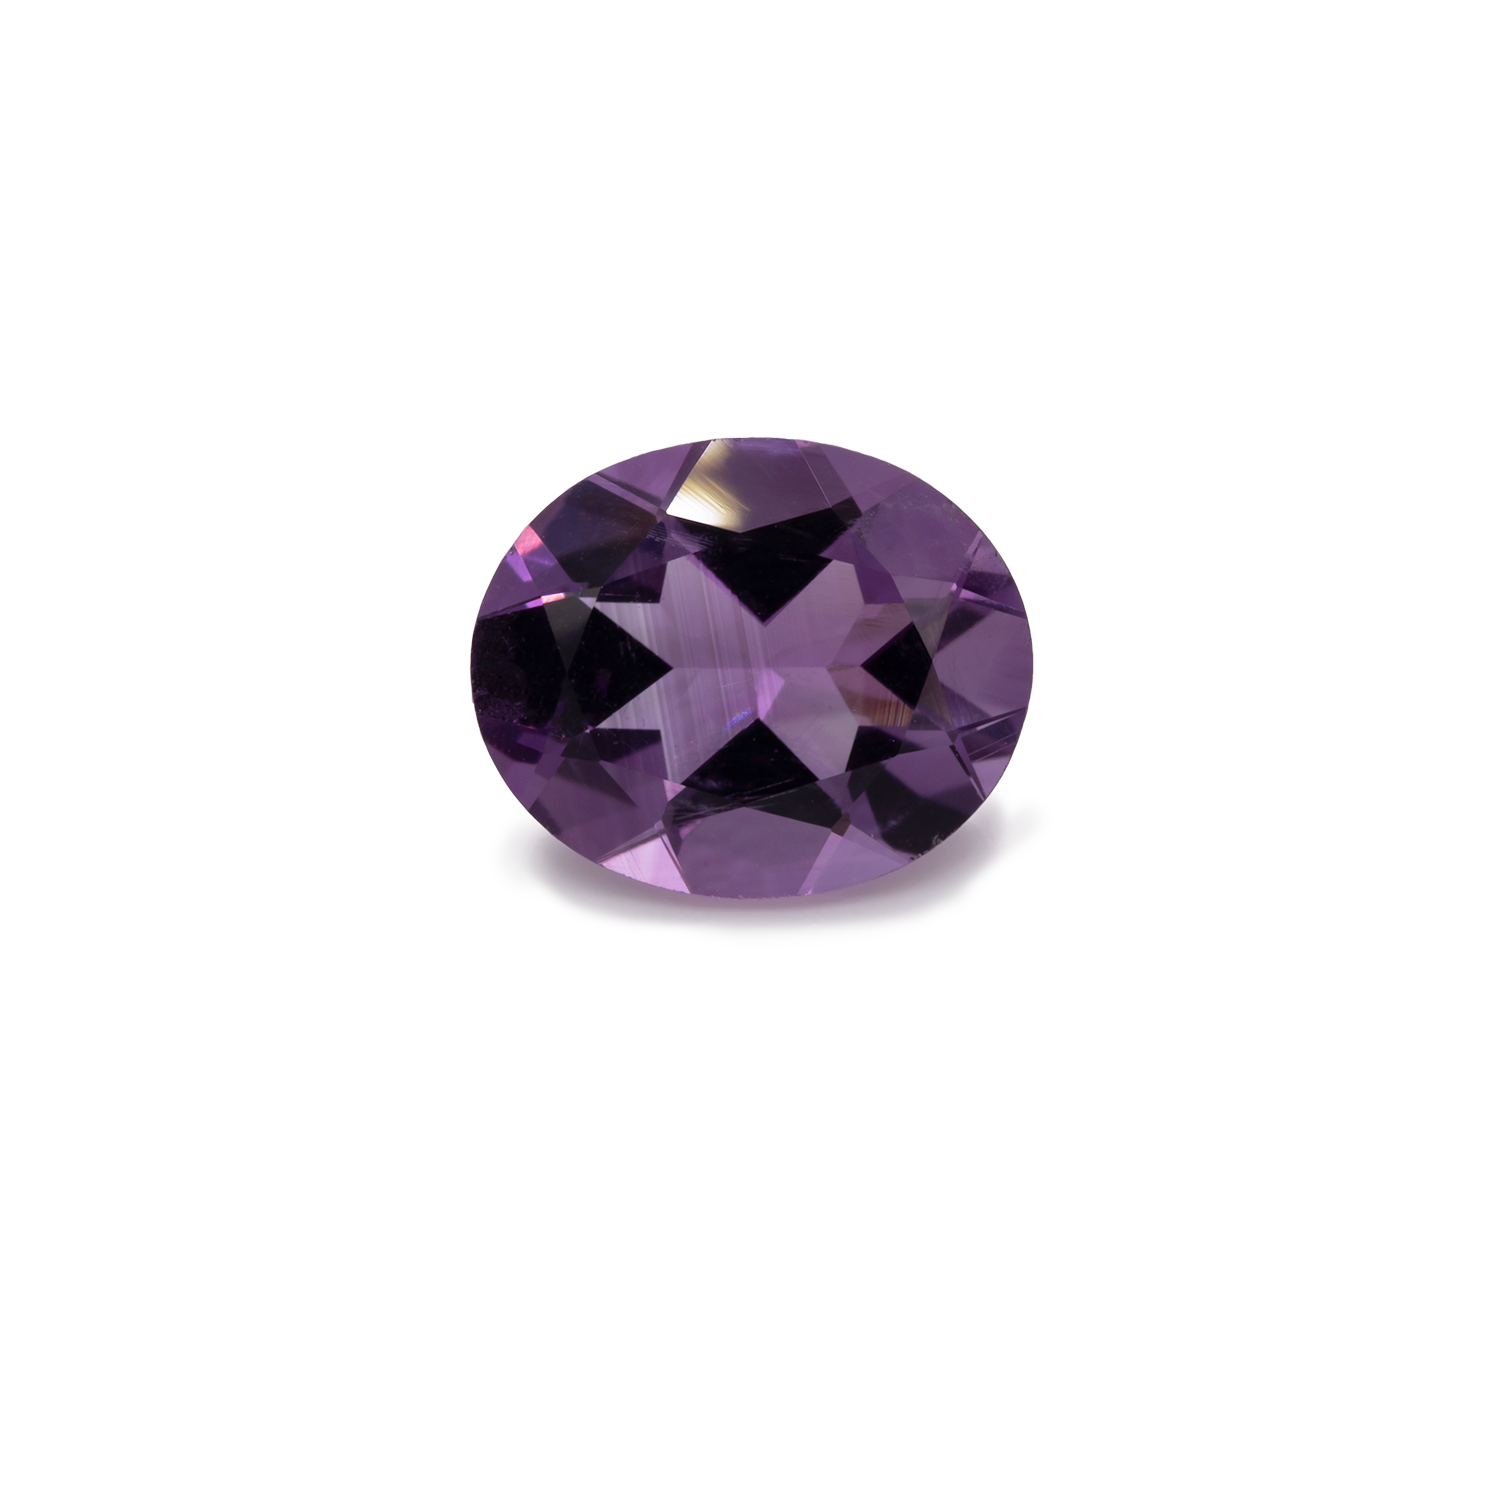 Amethyst - lila, oval, 11,1x9,1 mm, 3,00-3,80 cts, Nr. AMY55001